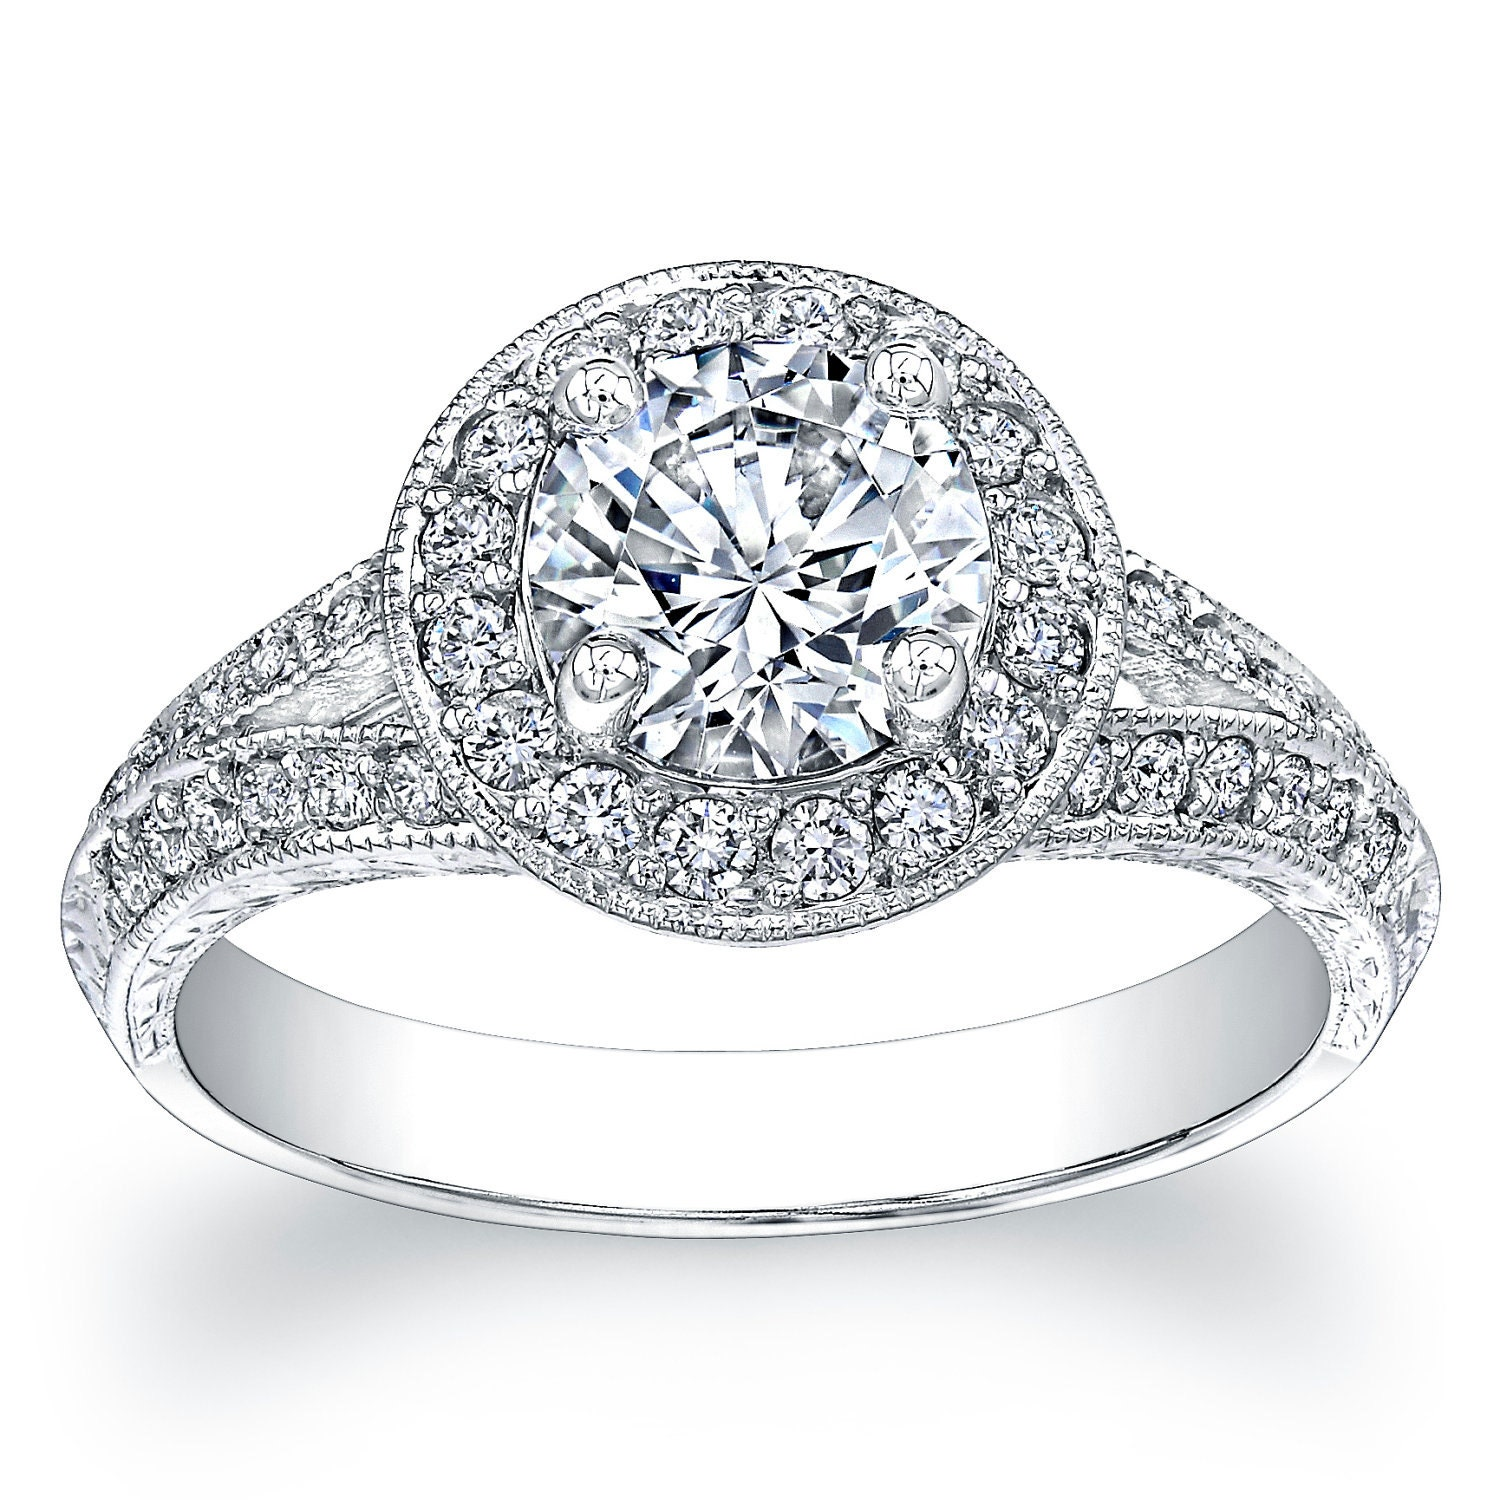 Platinum Split Band Halo Engagement Ring With 160 Ct Round